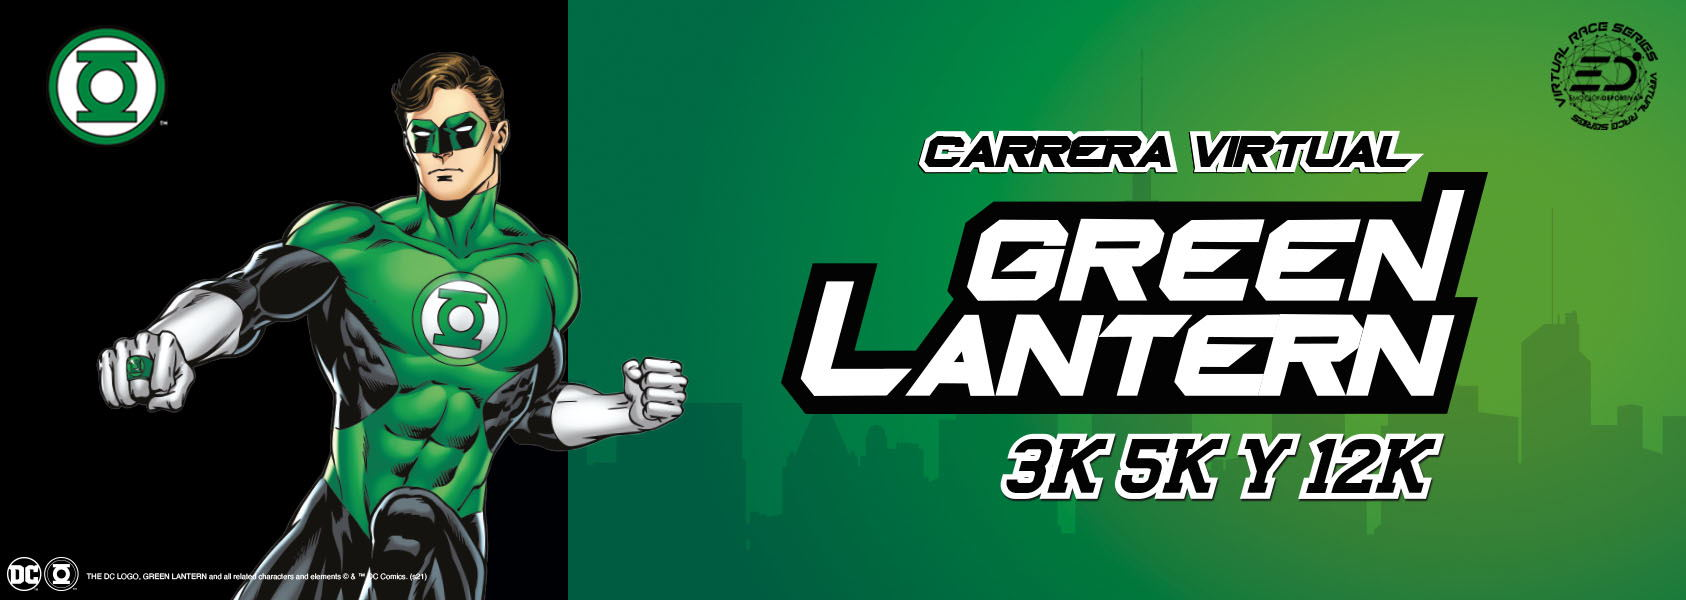 Banner-Home-The Green Lantern 2021 *12 KM*